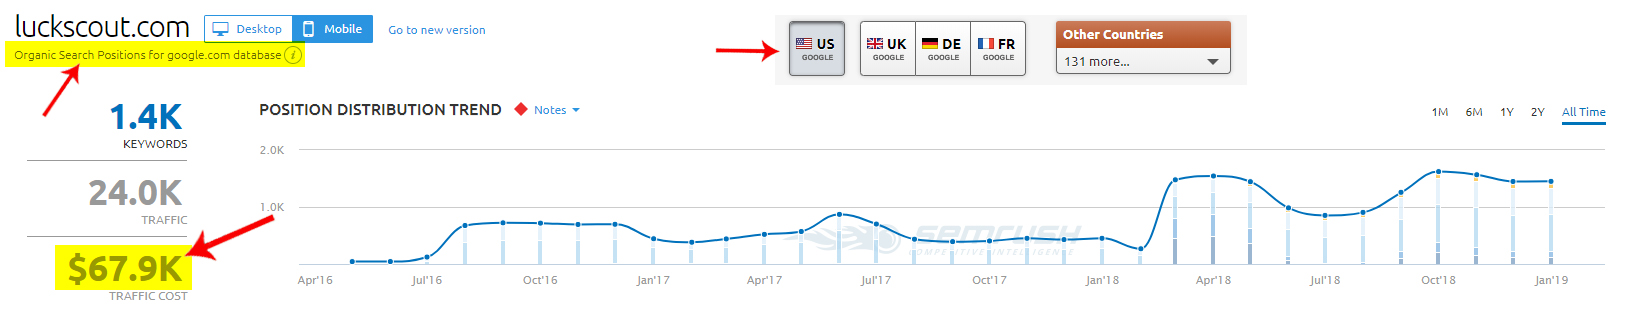 The Value of the Free Targeted Traffic that LuckScout Receives